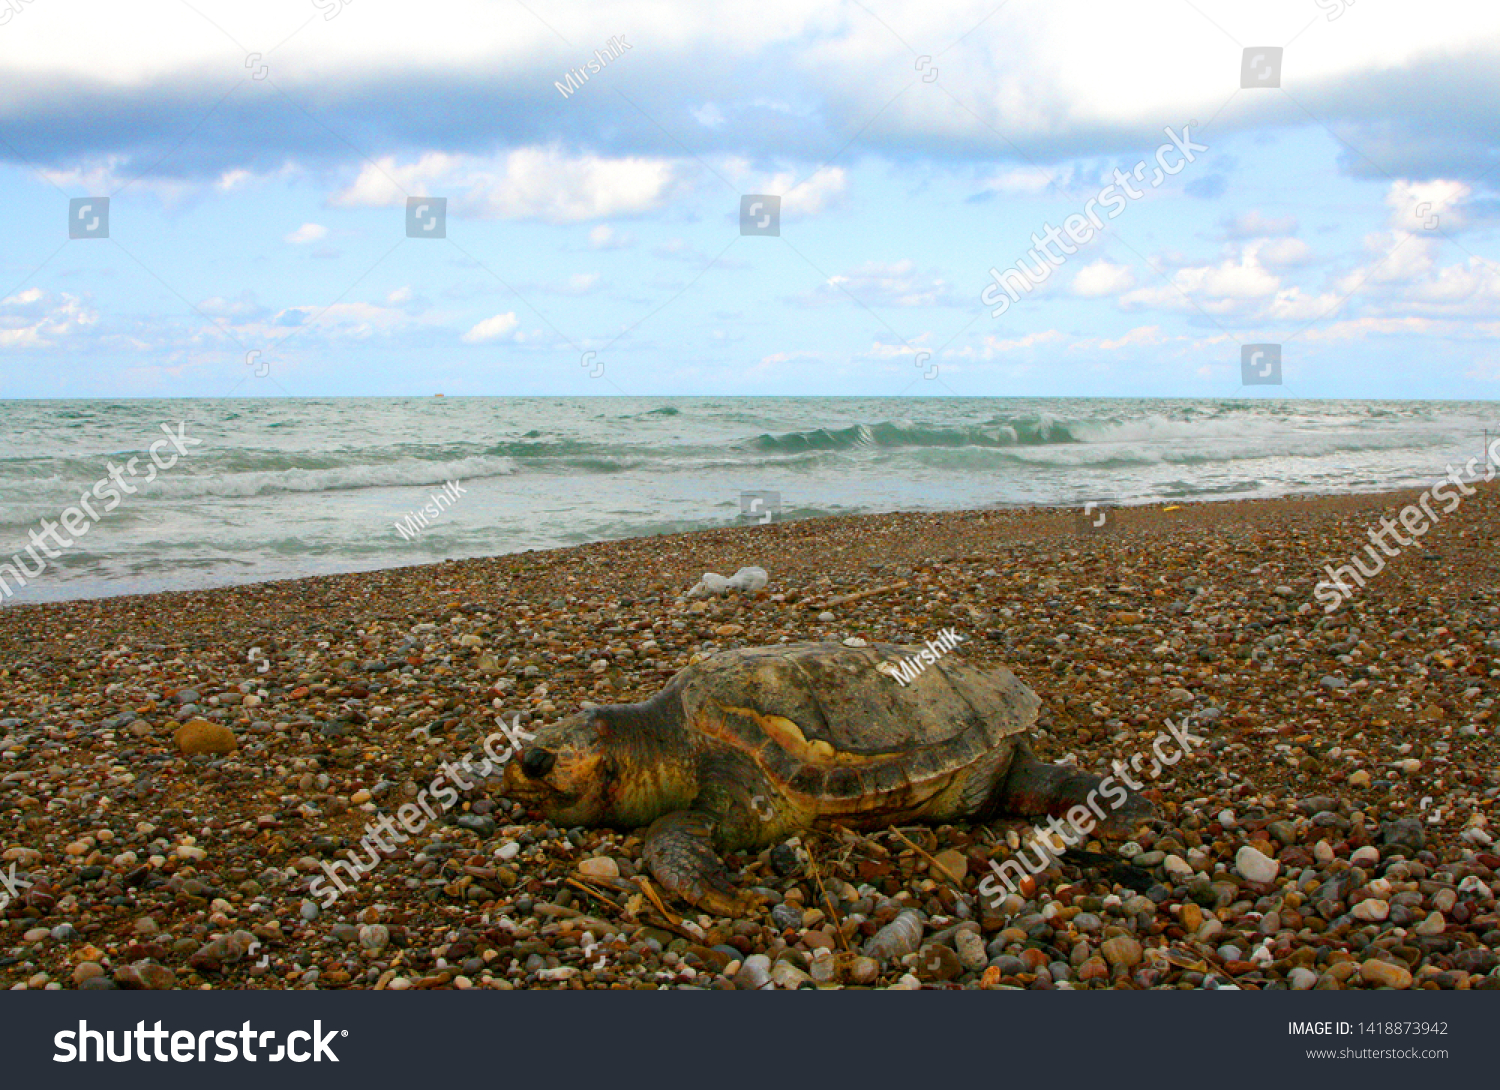 Wounded in the ocean turtle, swam to shore and died on the shore. #1418873942